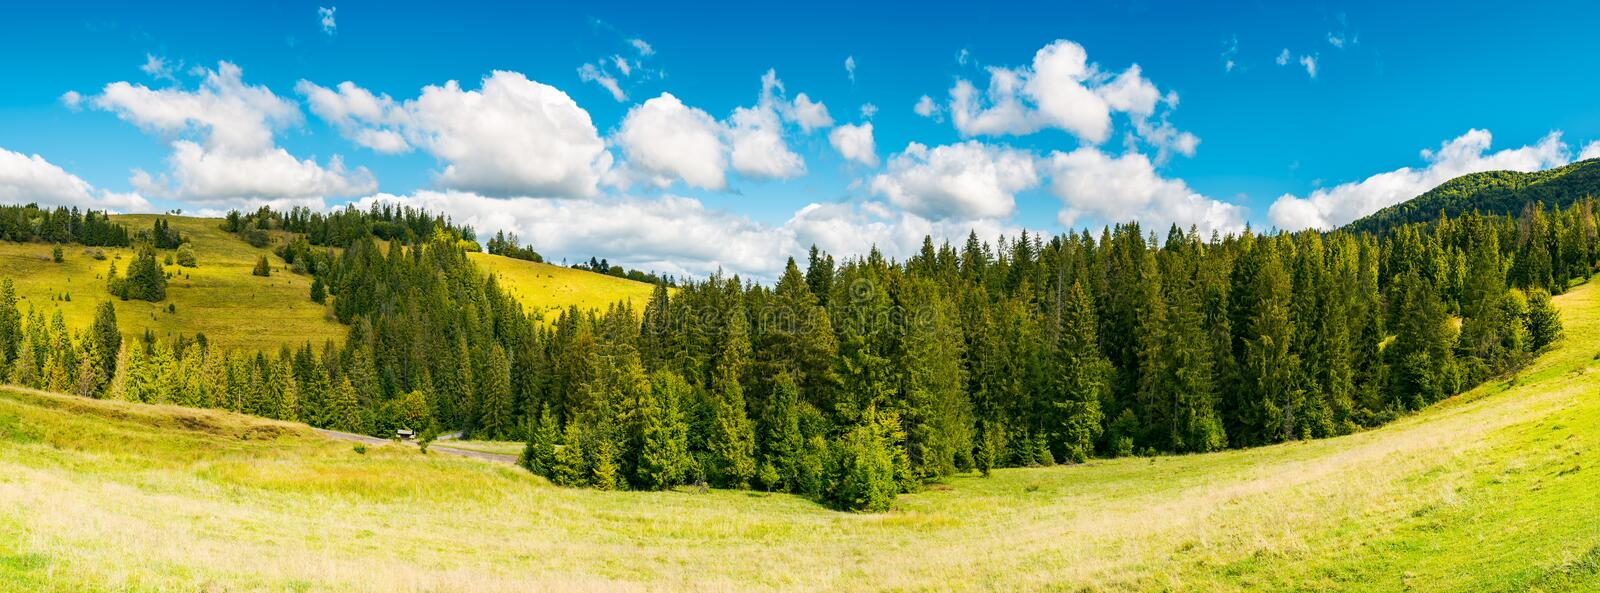 Countryside panorama in early autumn. Lovely landscape with spruce forest on the grassy hill. beautiful cloud formation above the distant ridge. warm and sunny stock images